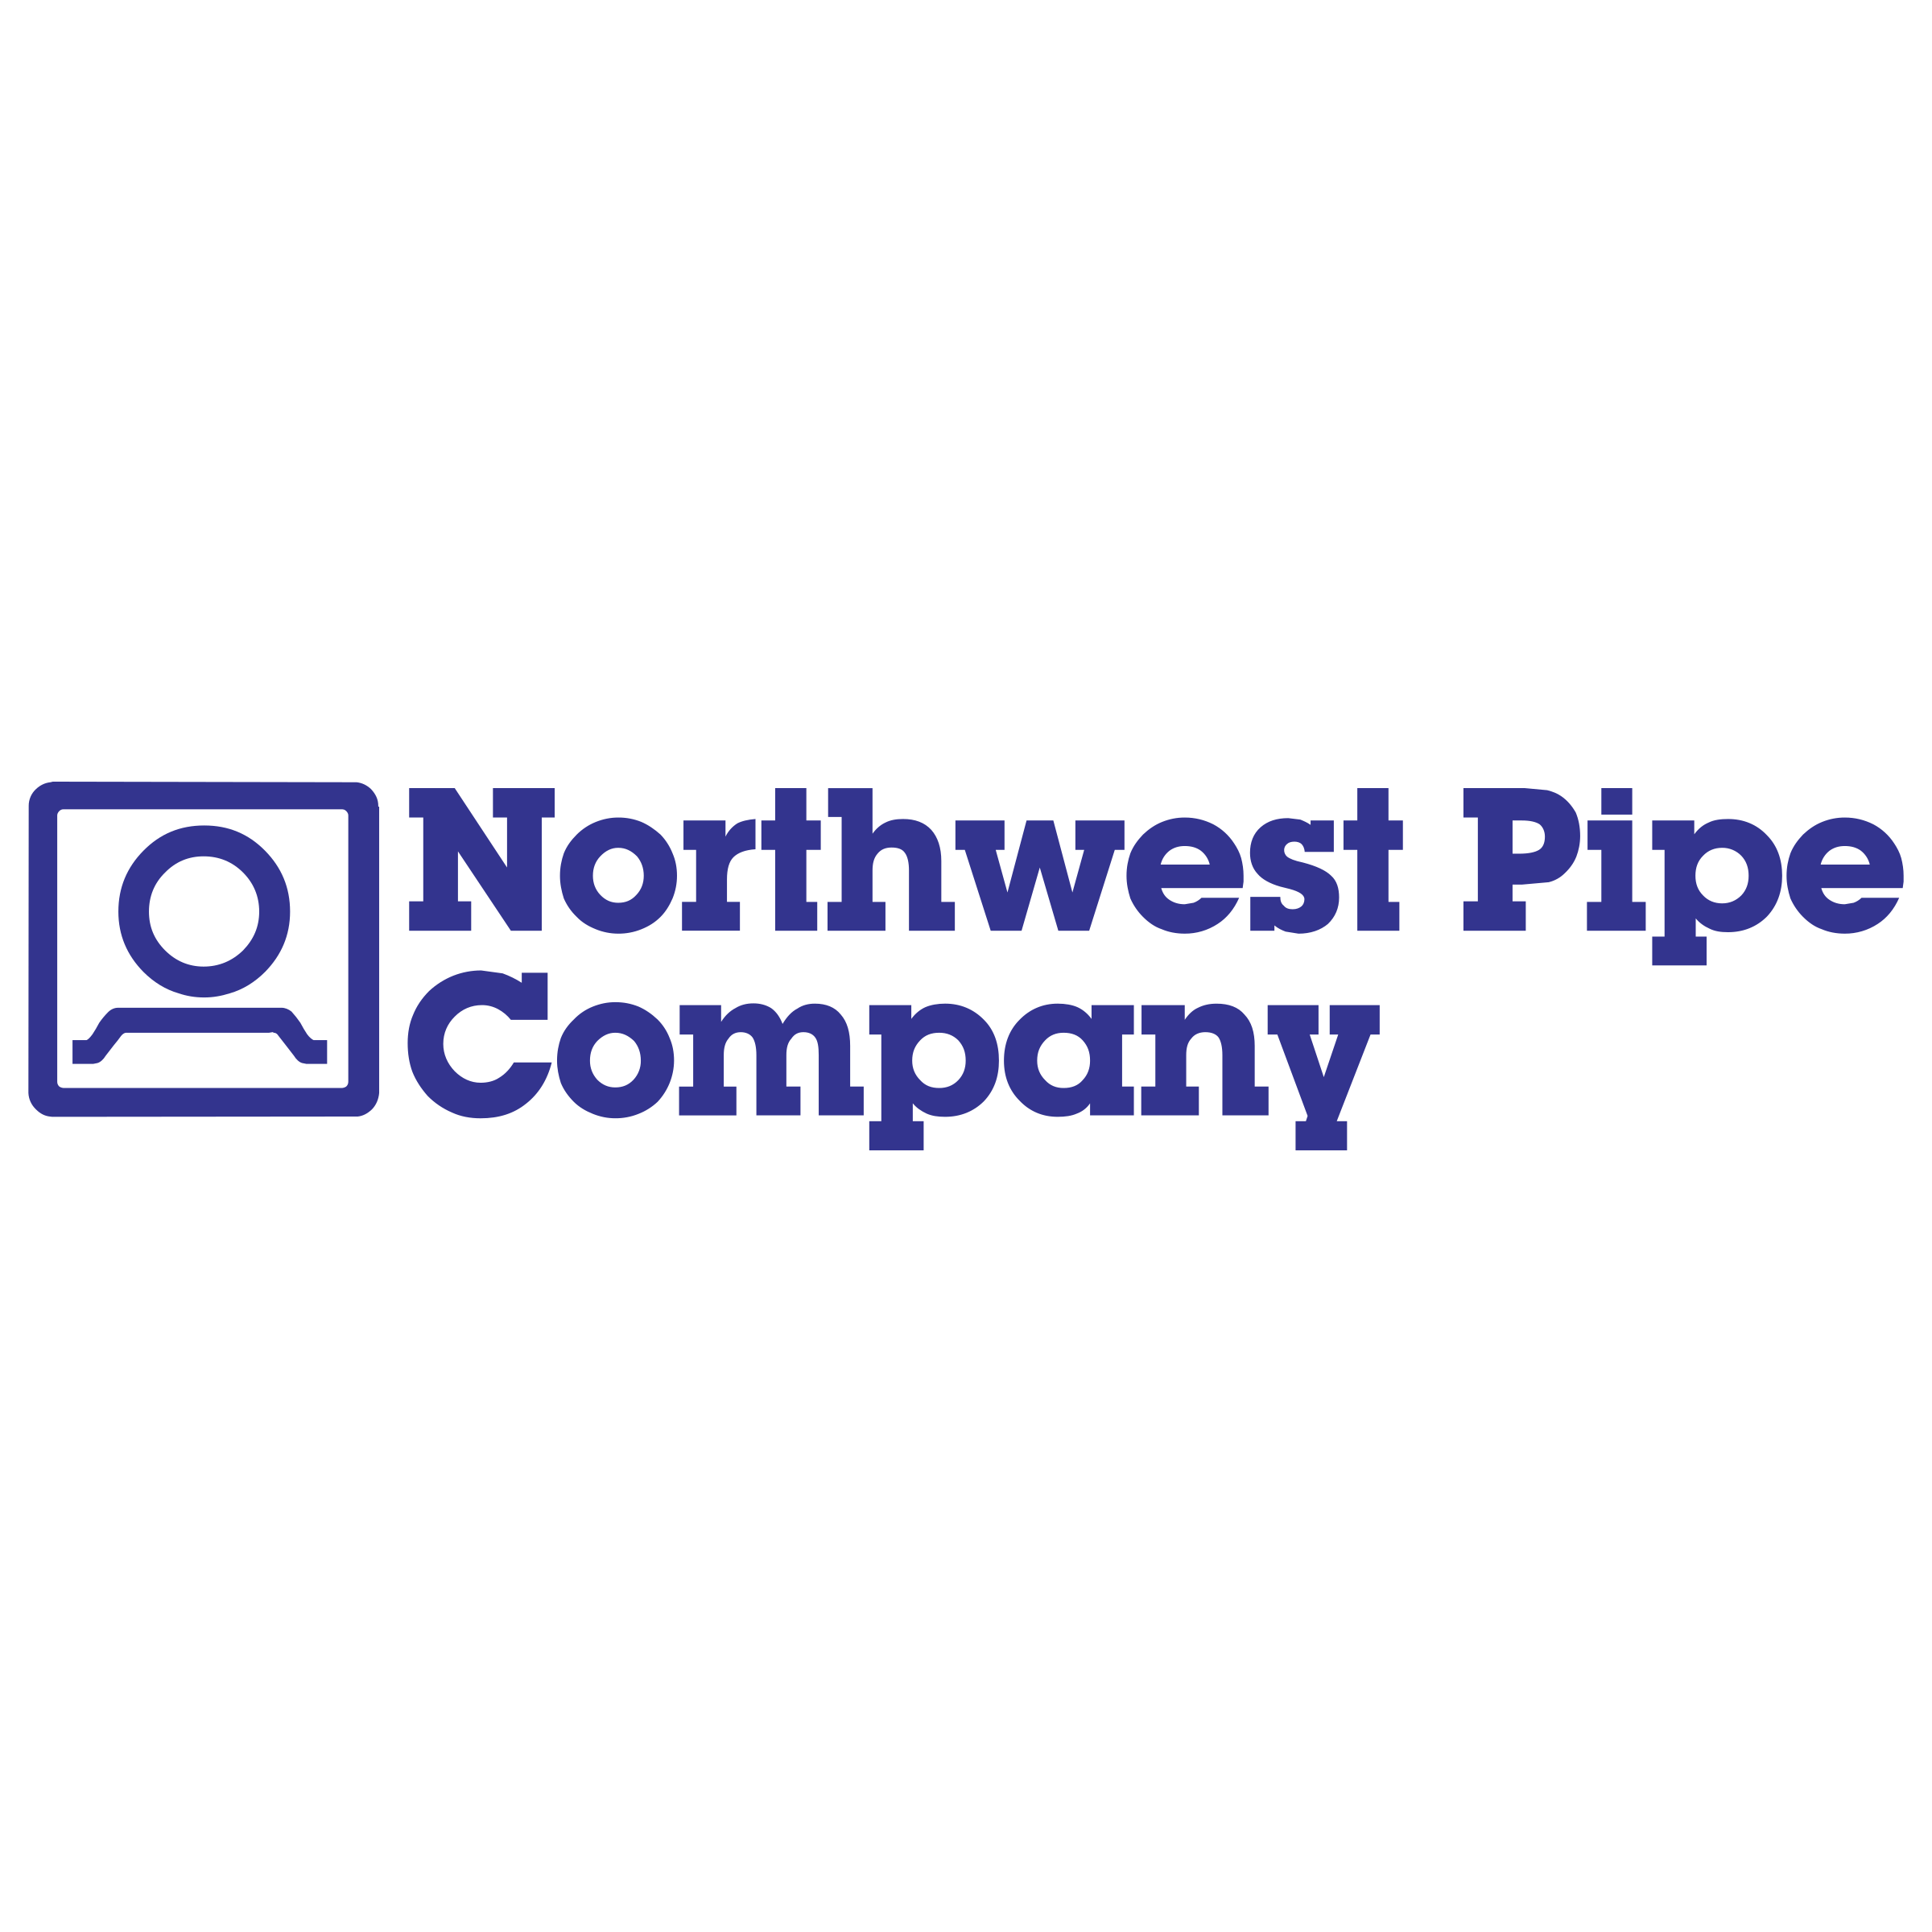 Northwest Pipe Company Logo PNG Transparent & SVG Vector